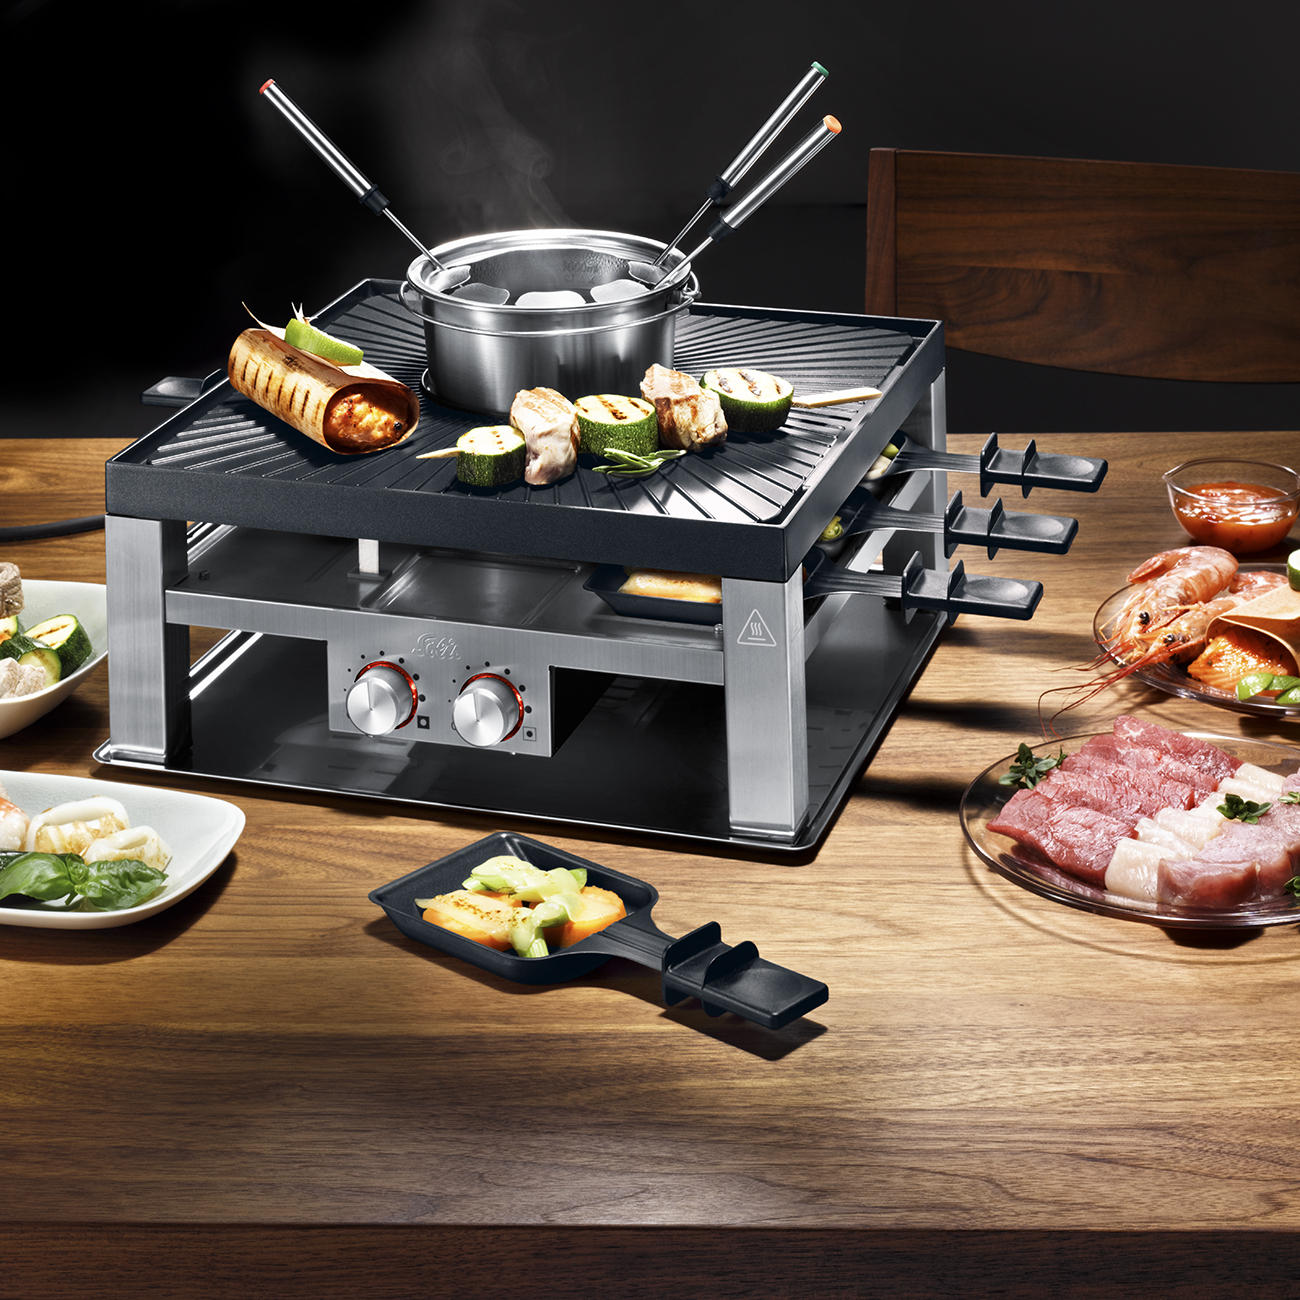 solis combi grill 3 in 1 design raclette tischgrill fondue set. Black Bedroom Furniture Sets. Home Design Ideas